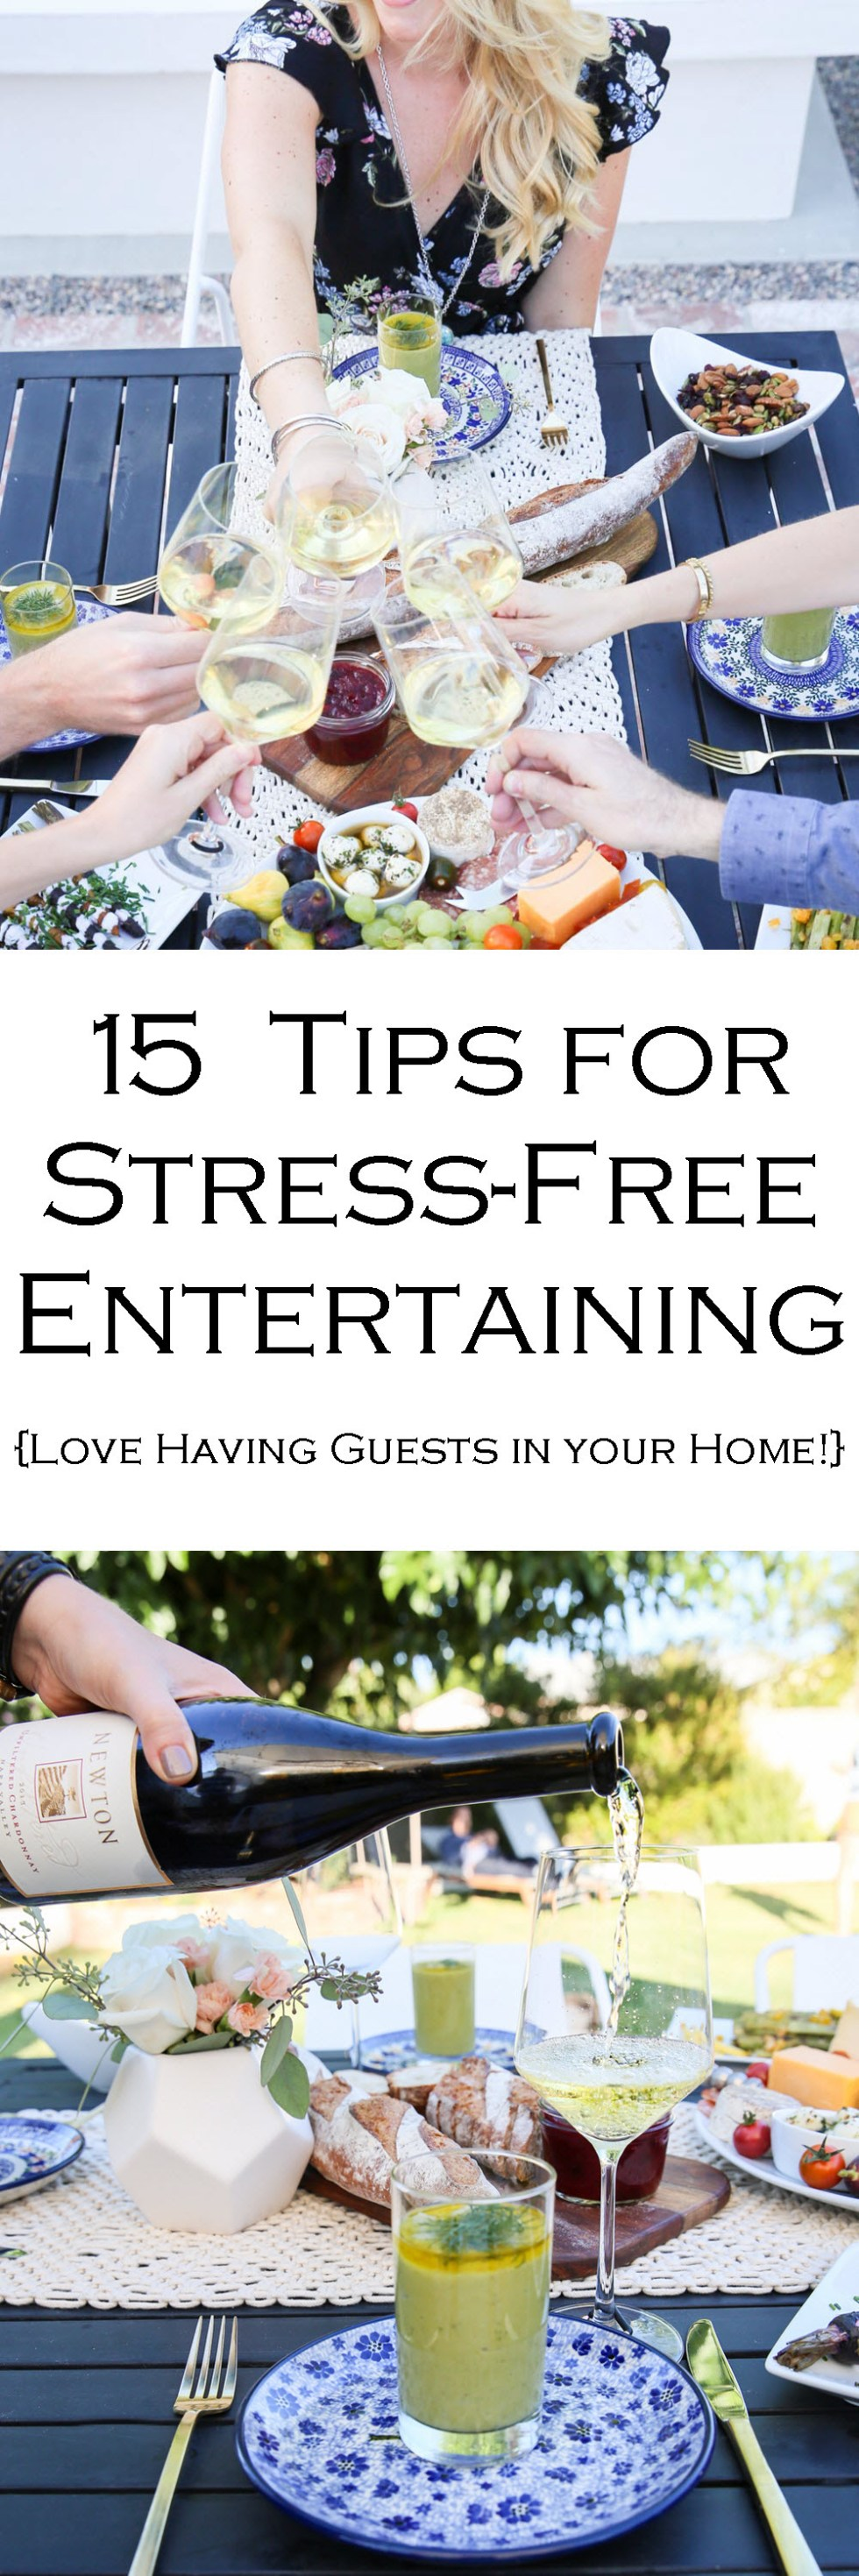 15 Tips for Stress-Free, Easy Entertaining Tips | Dinner Party Guests in Your Home.